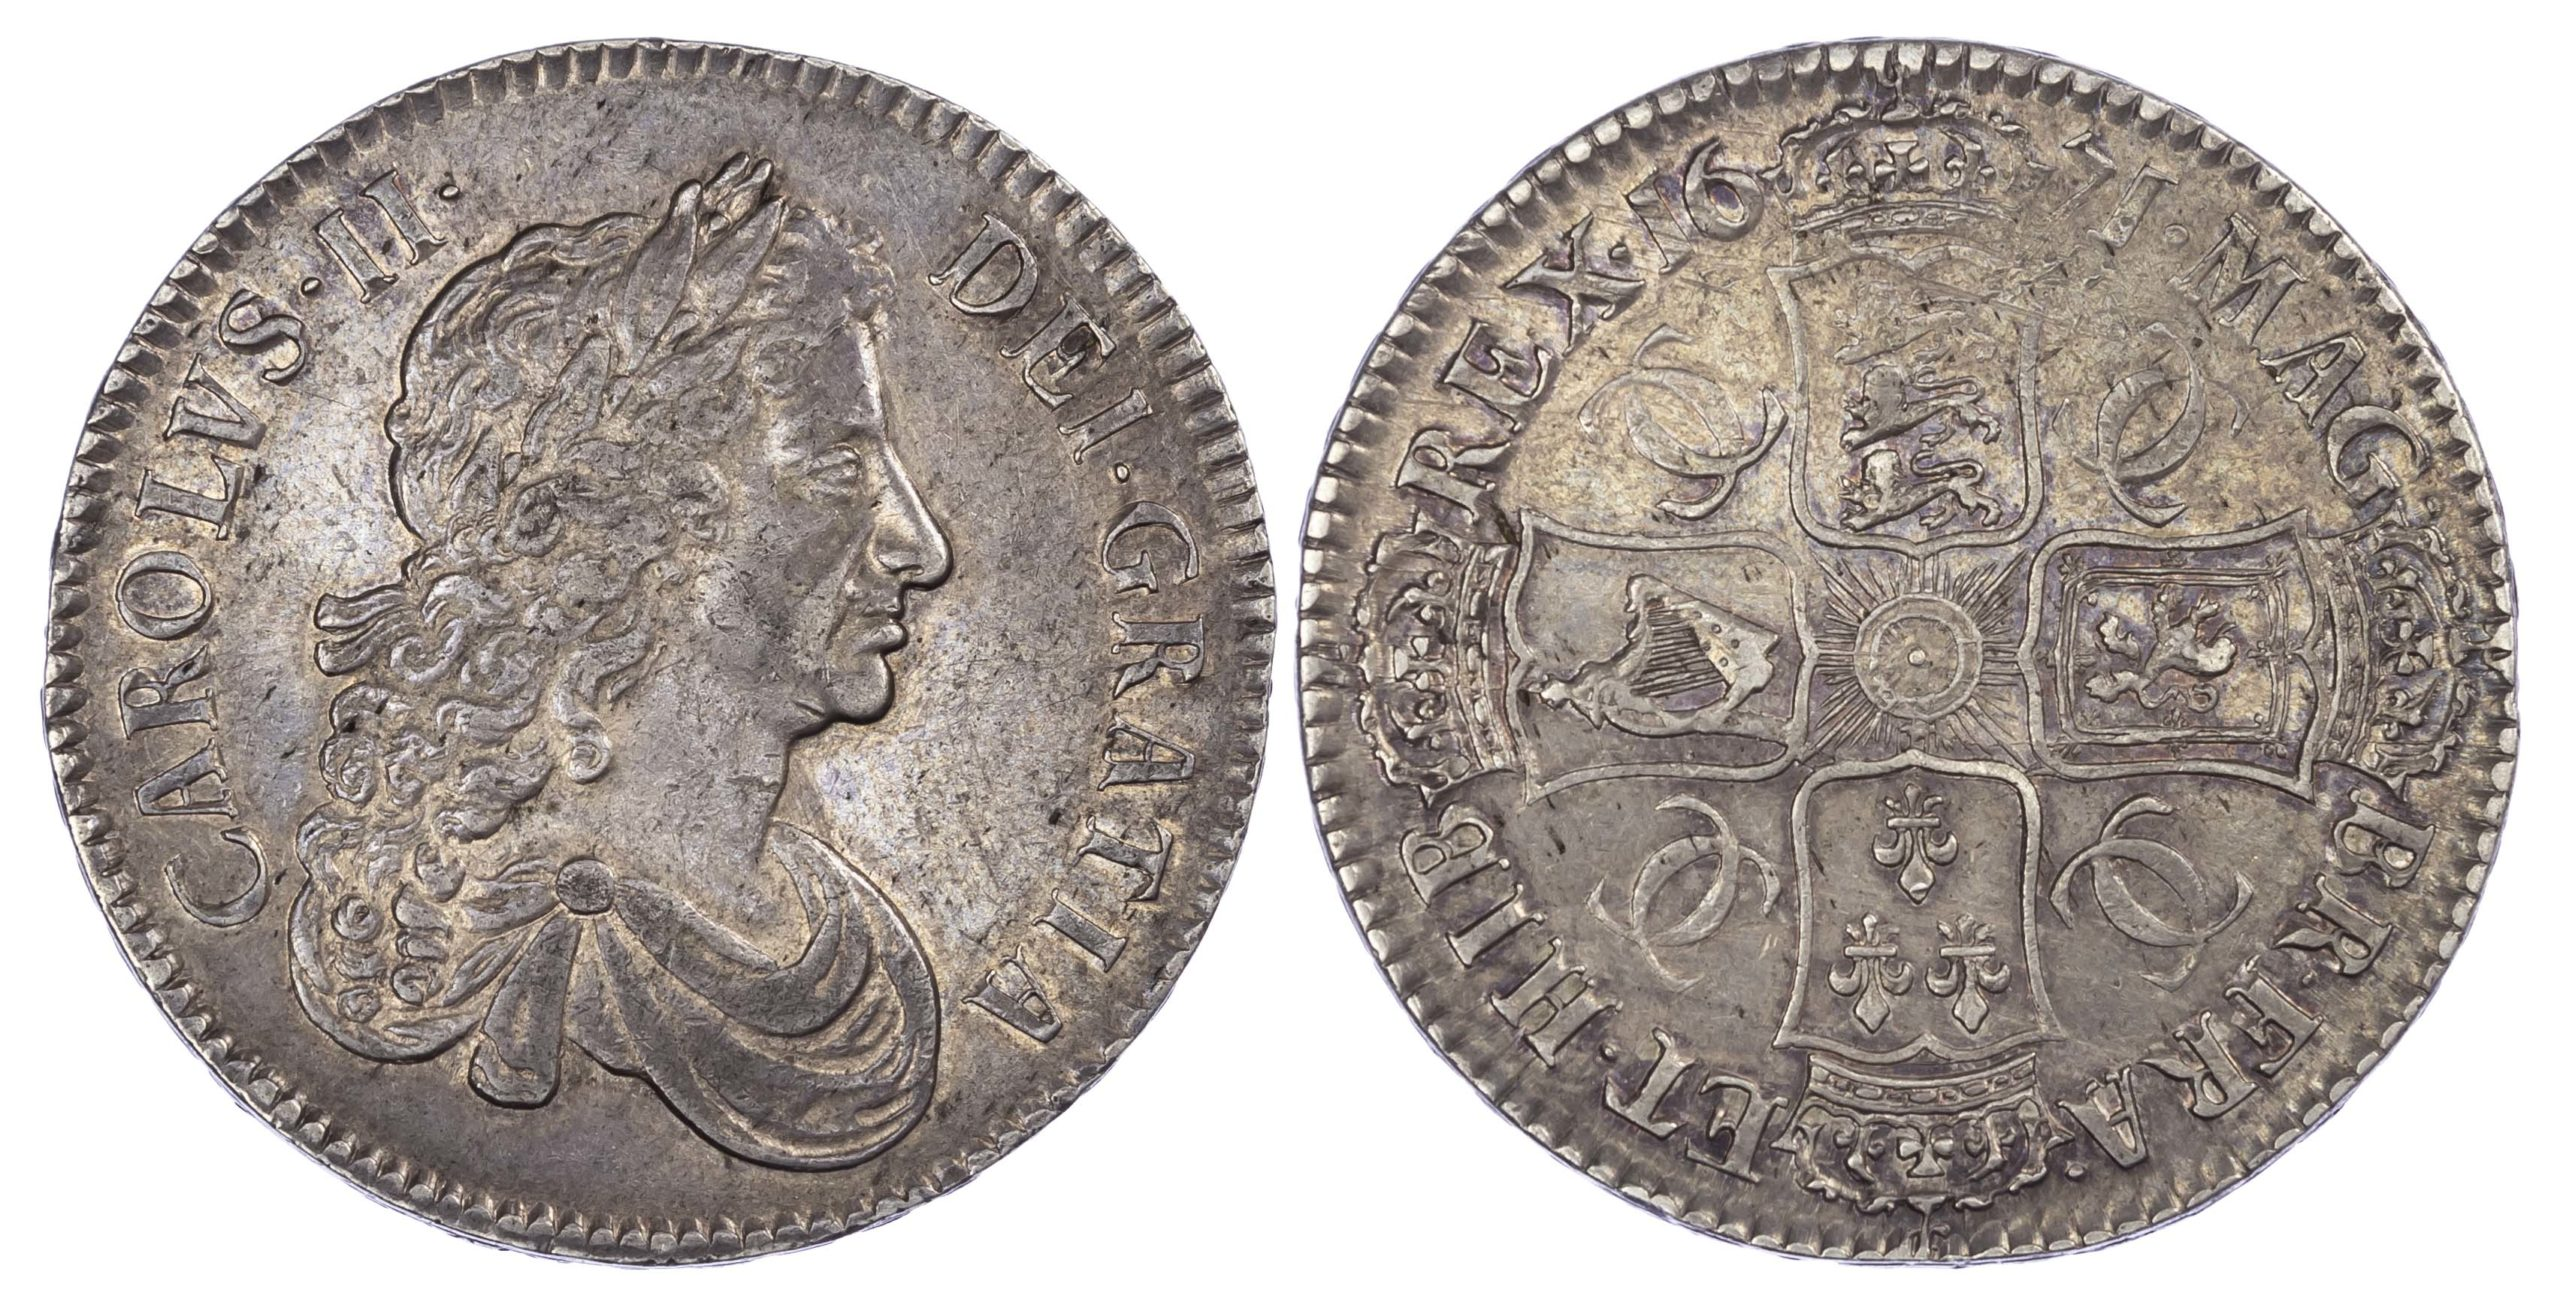 Charles II (1660-85), Crown, 1671, extremely fine